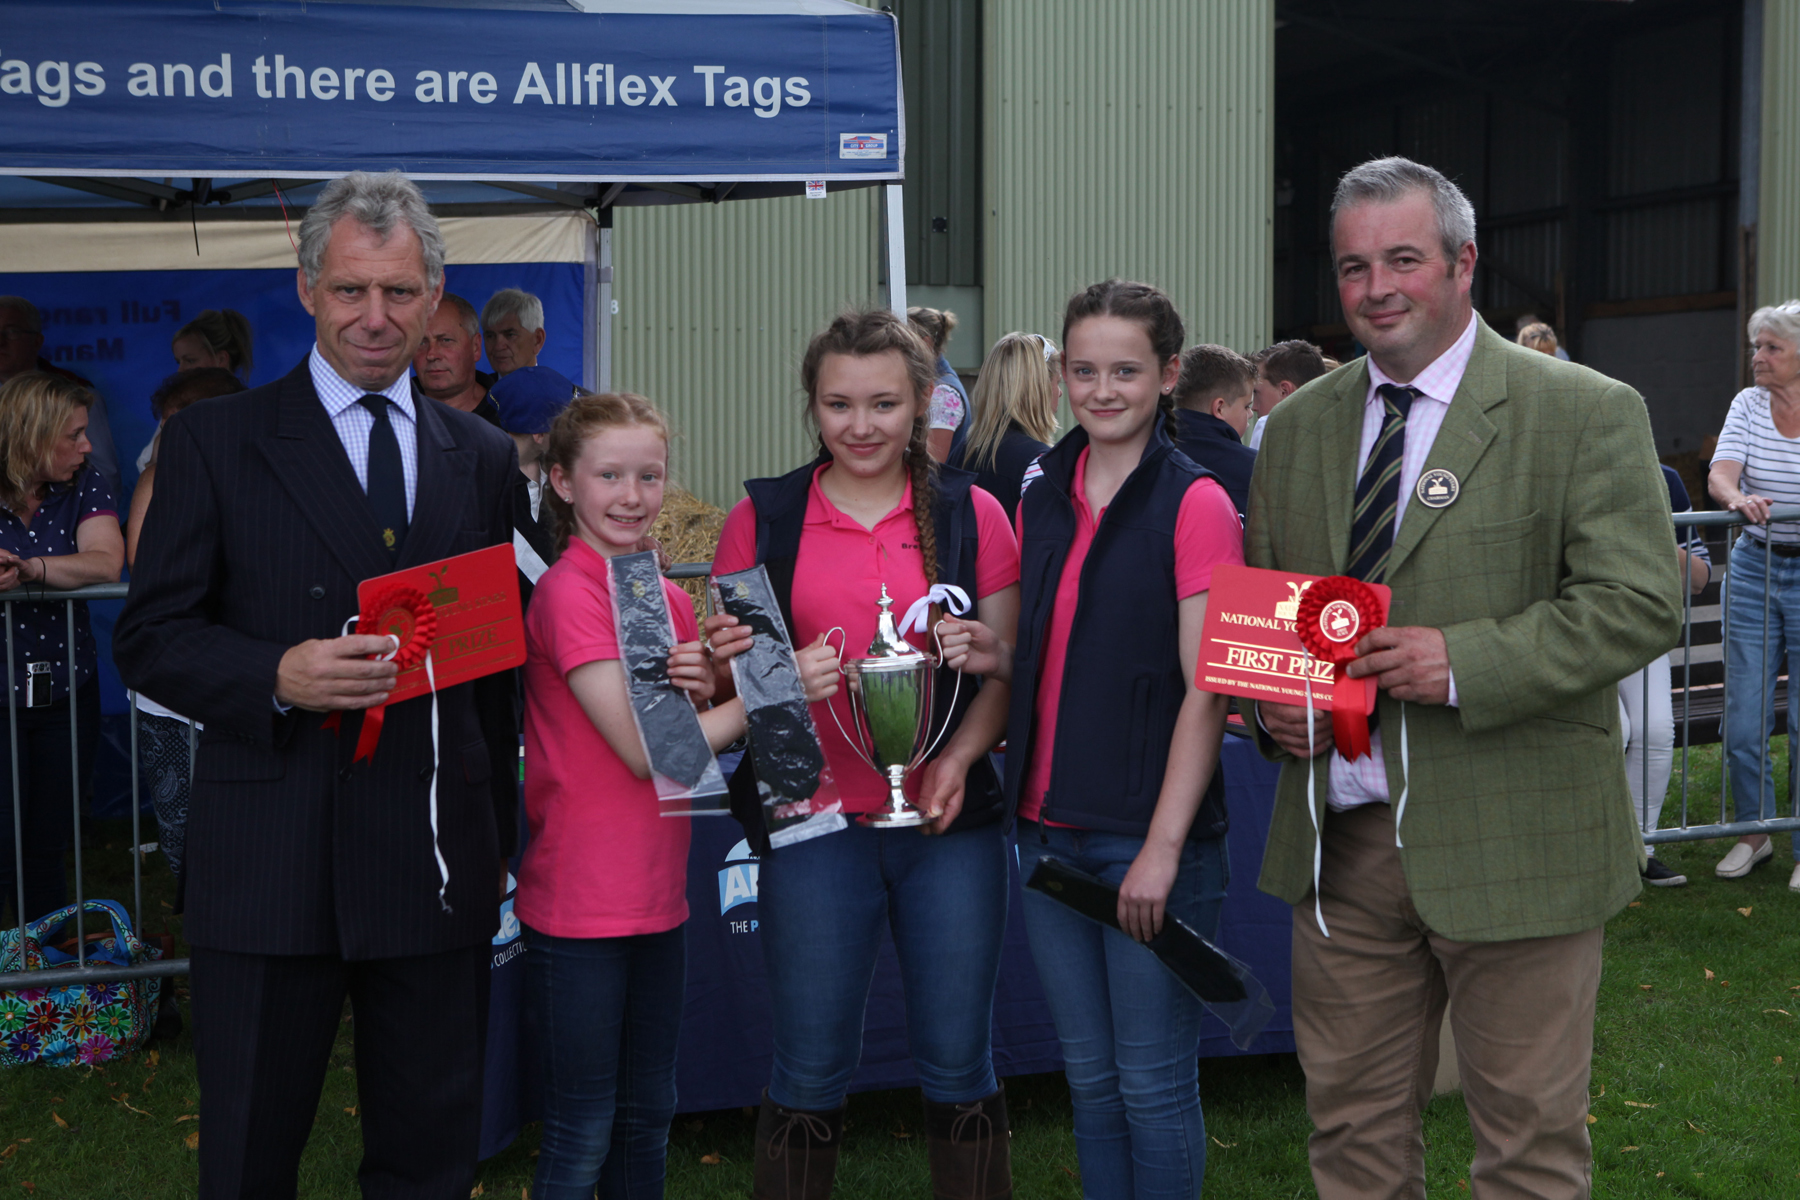 2017 National Young Stars winning team pictured with Royal Smithfield Club Chairman William Bedell (left) and NYS Event Organiser Neil Lloyd (right)